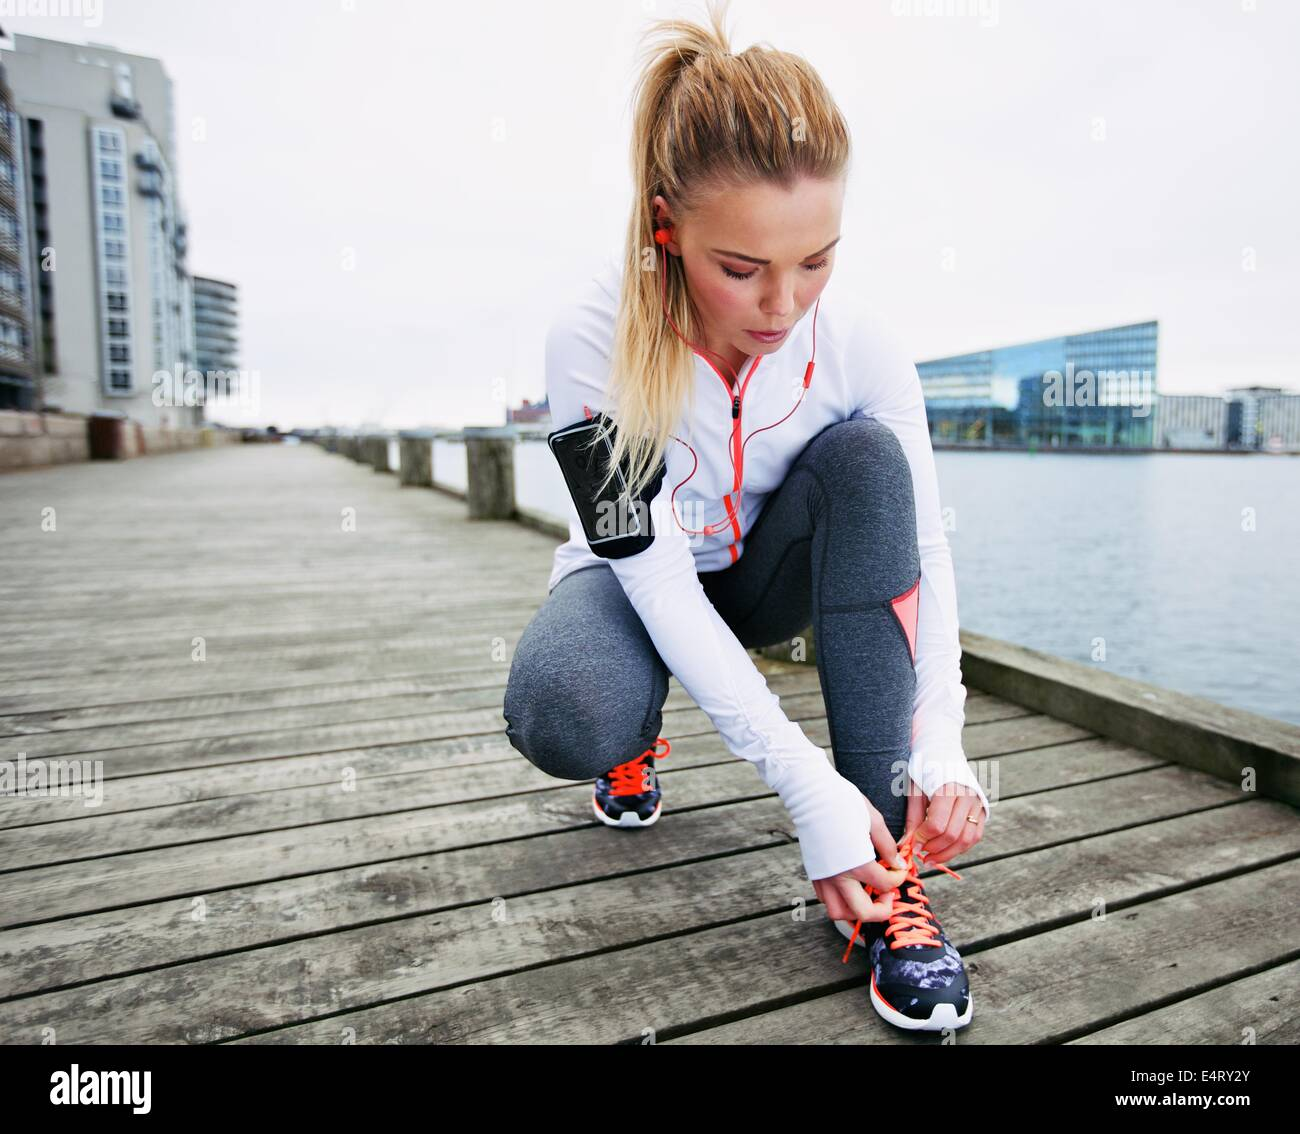 Fit and sporty young woman tying her laces before a run. Female runner tying her shoelaces while training outdoor. - Stock Image